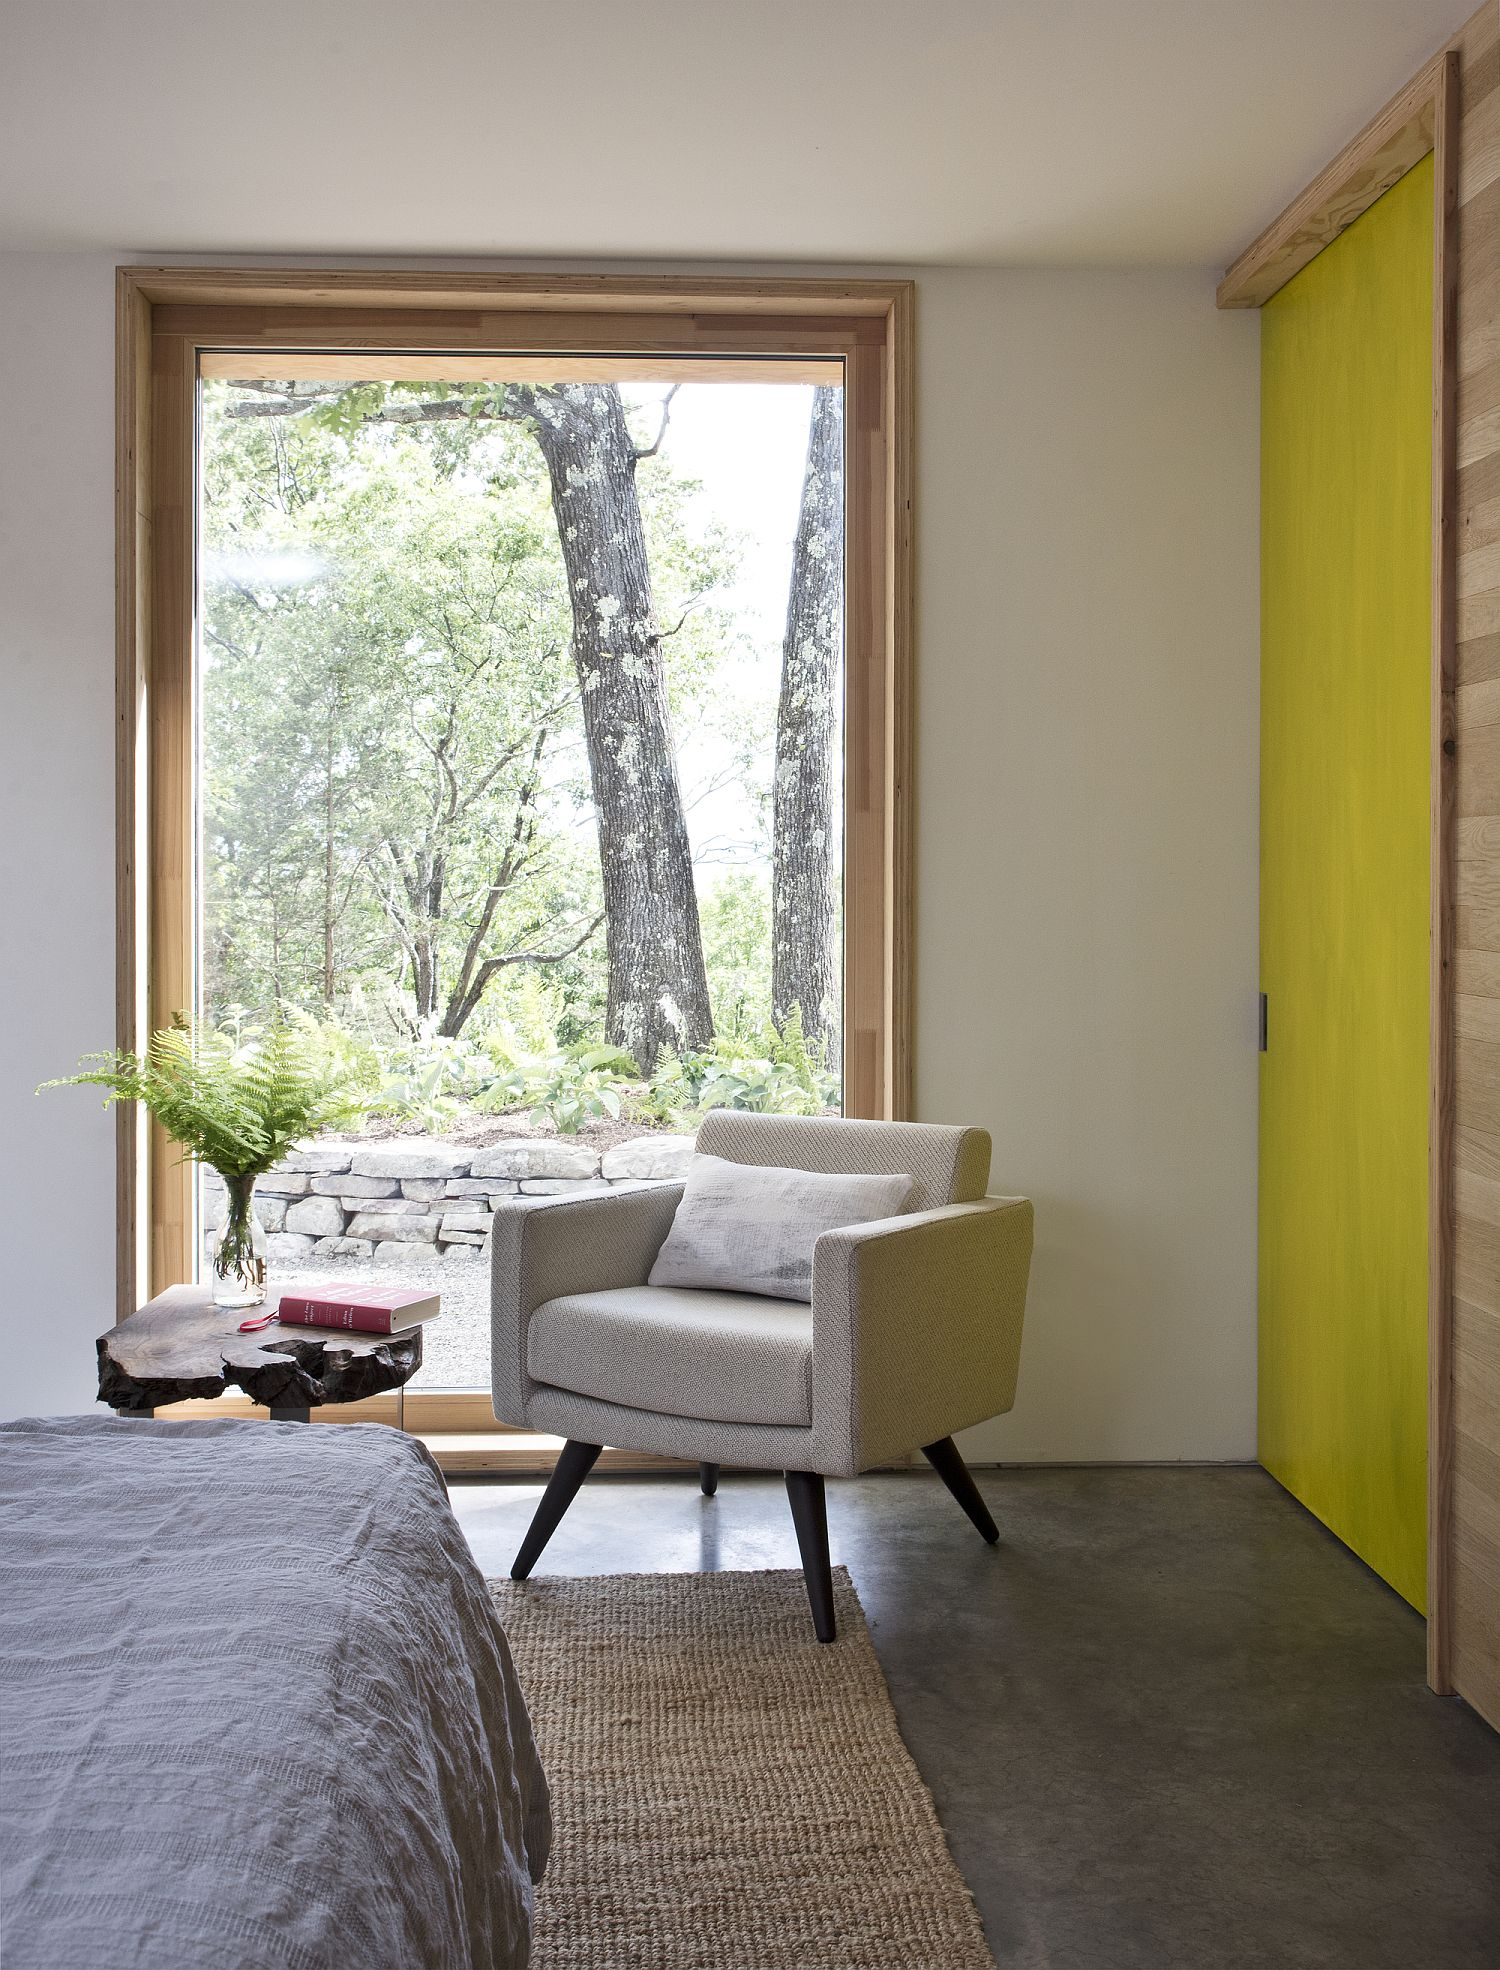 Glass wall sections and windows bring in plenty of natural light